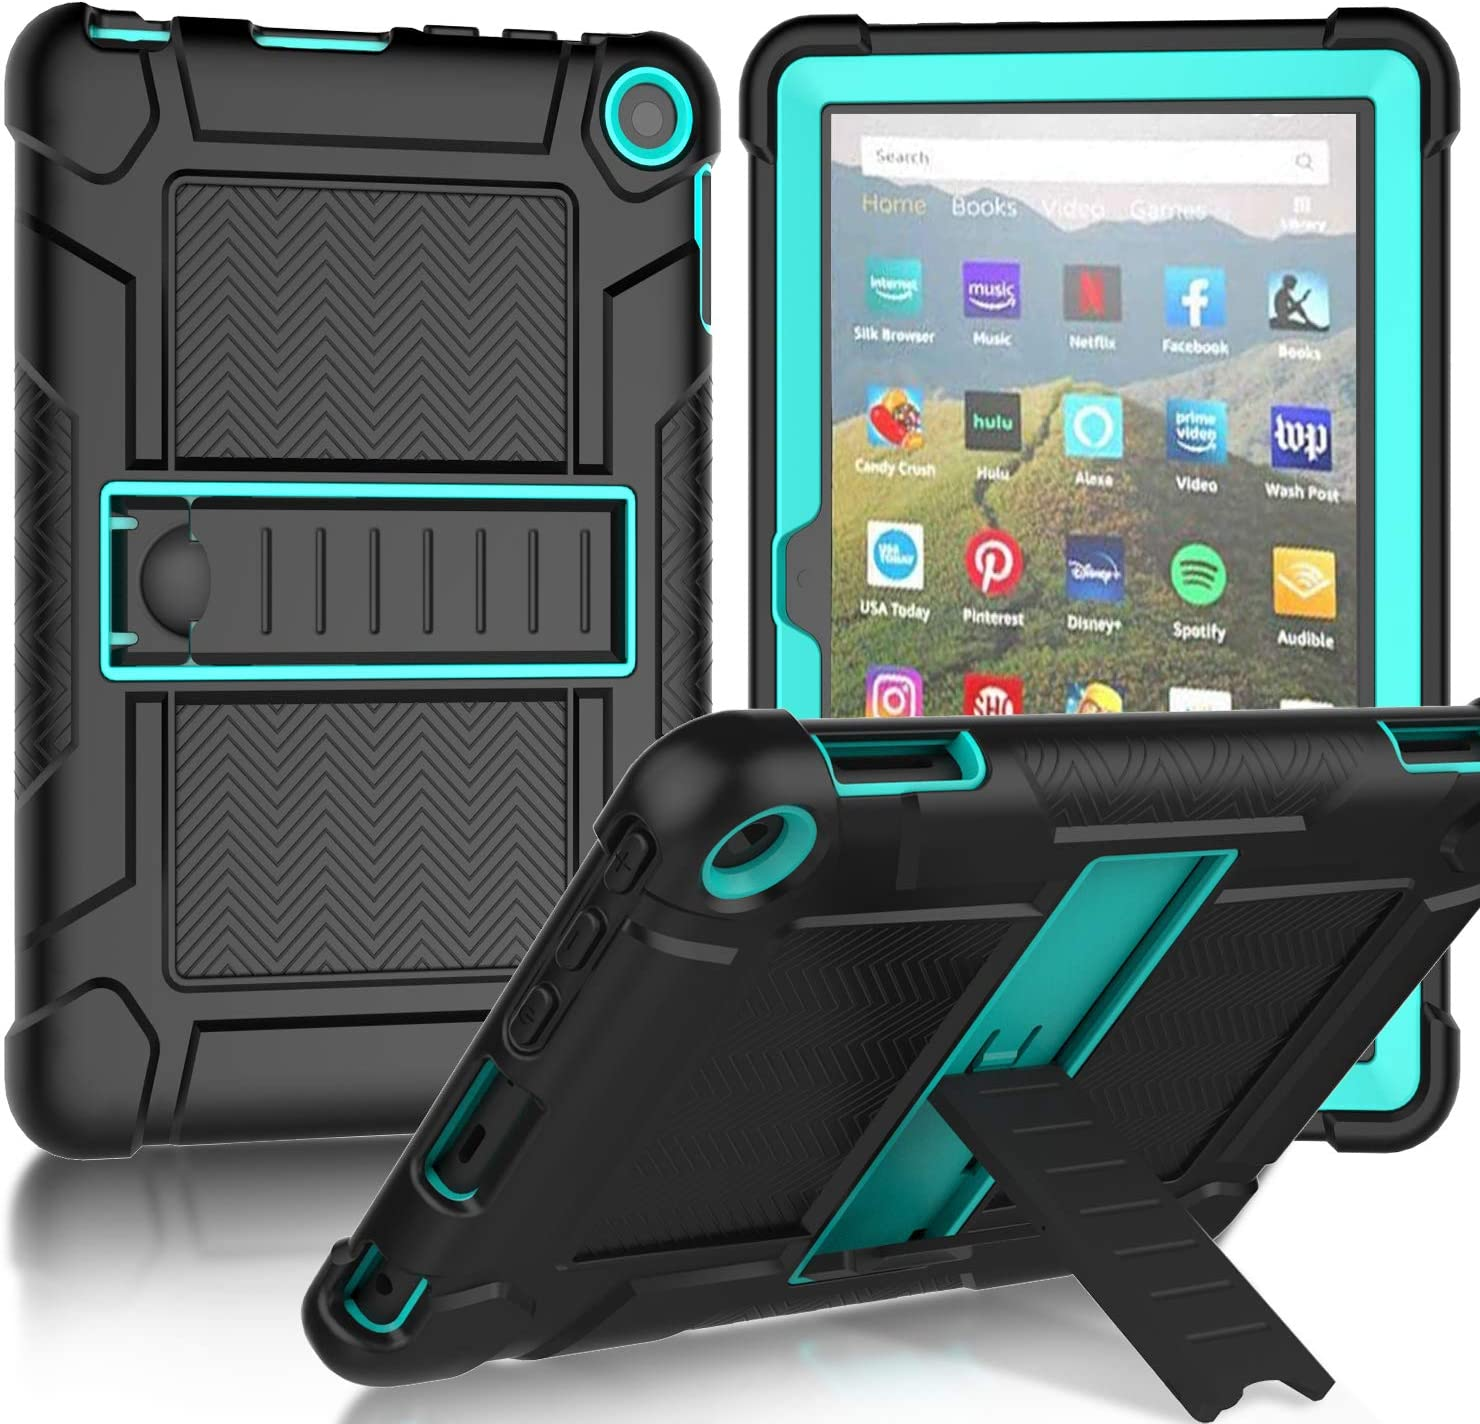 MENZO All-New Fire HD 8 2020 Case, Fire HD 8 Plus Tablet Case, Slim Shockproof Rugged High Impact Protective Case with Kickstand for Fire HD 8 Tablet (10th Generation, 2020 Release),Black & Turquoise